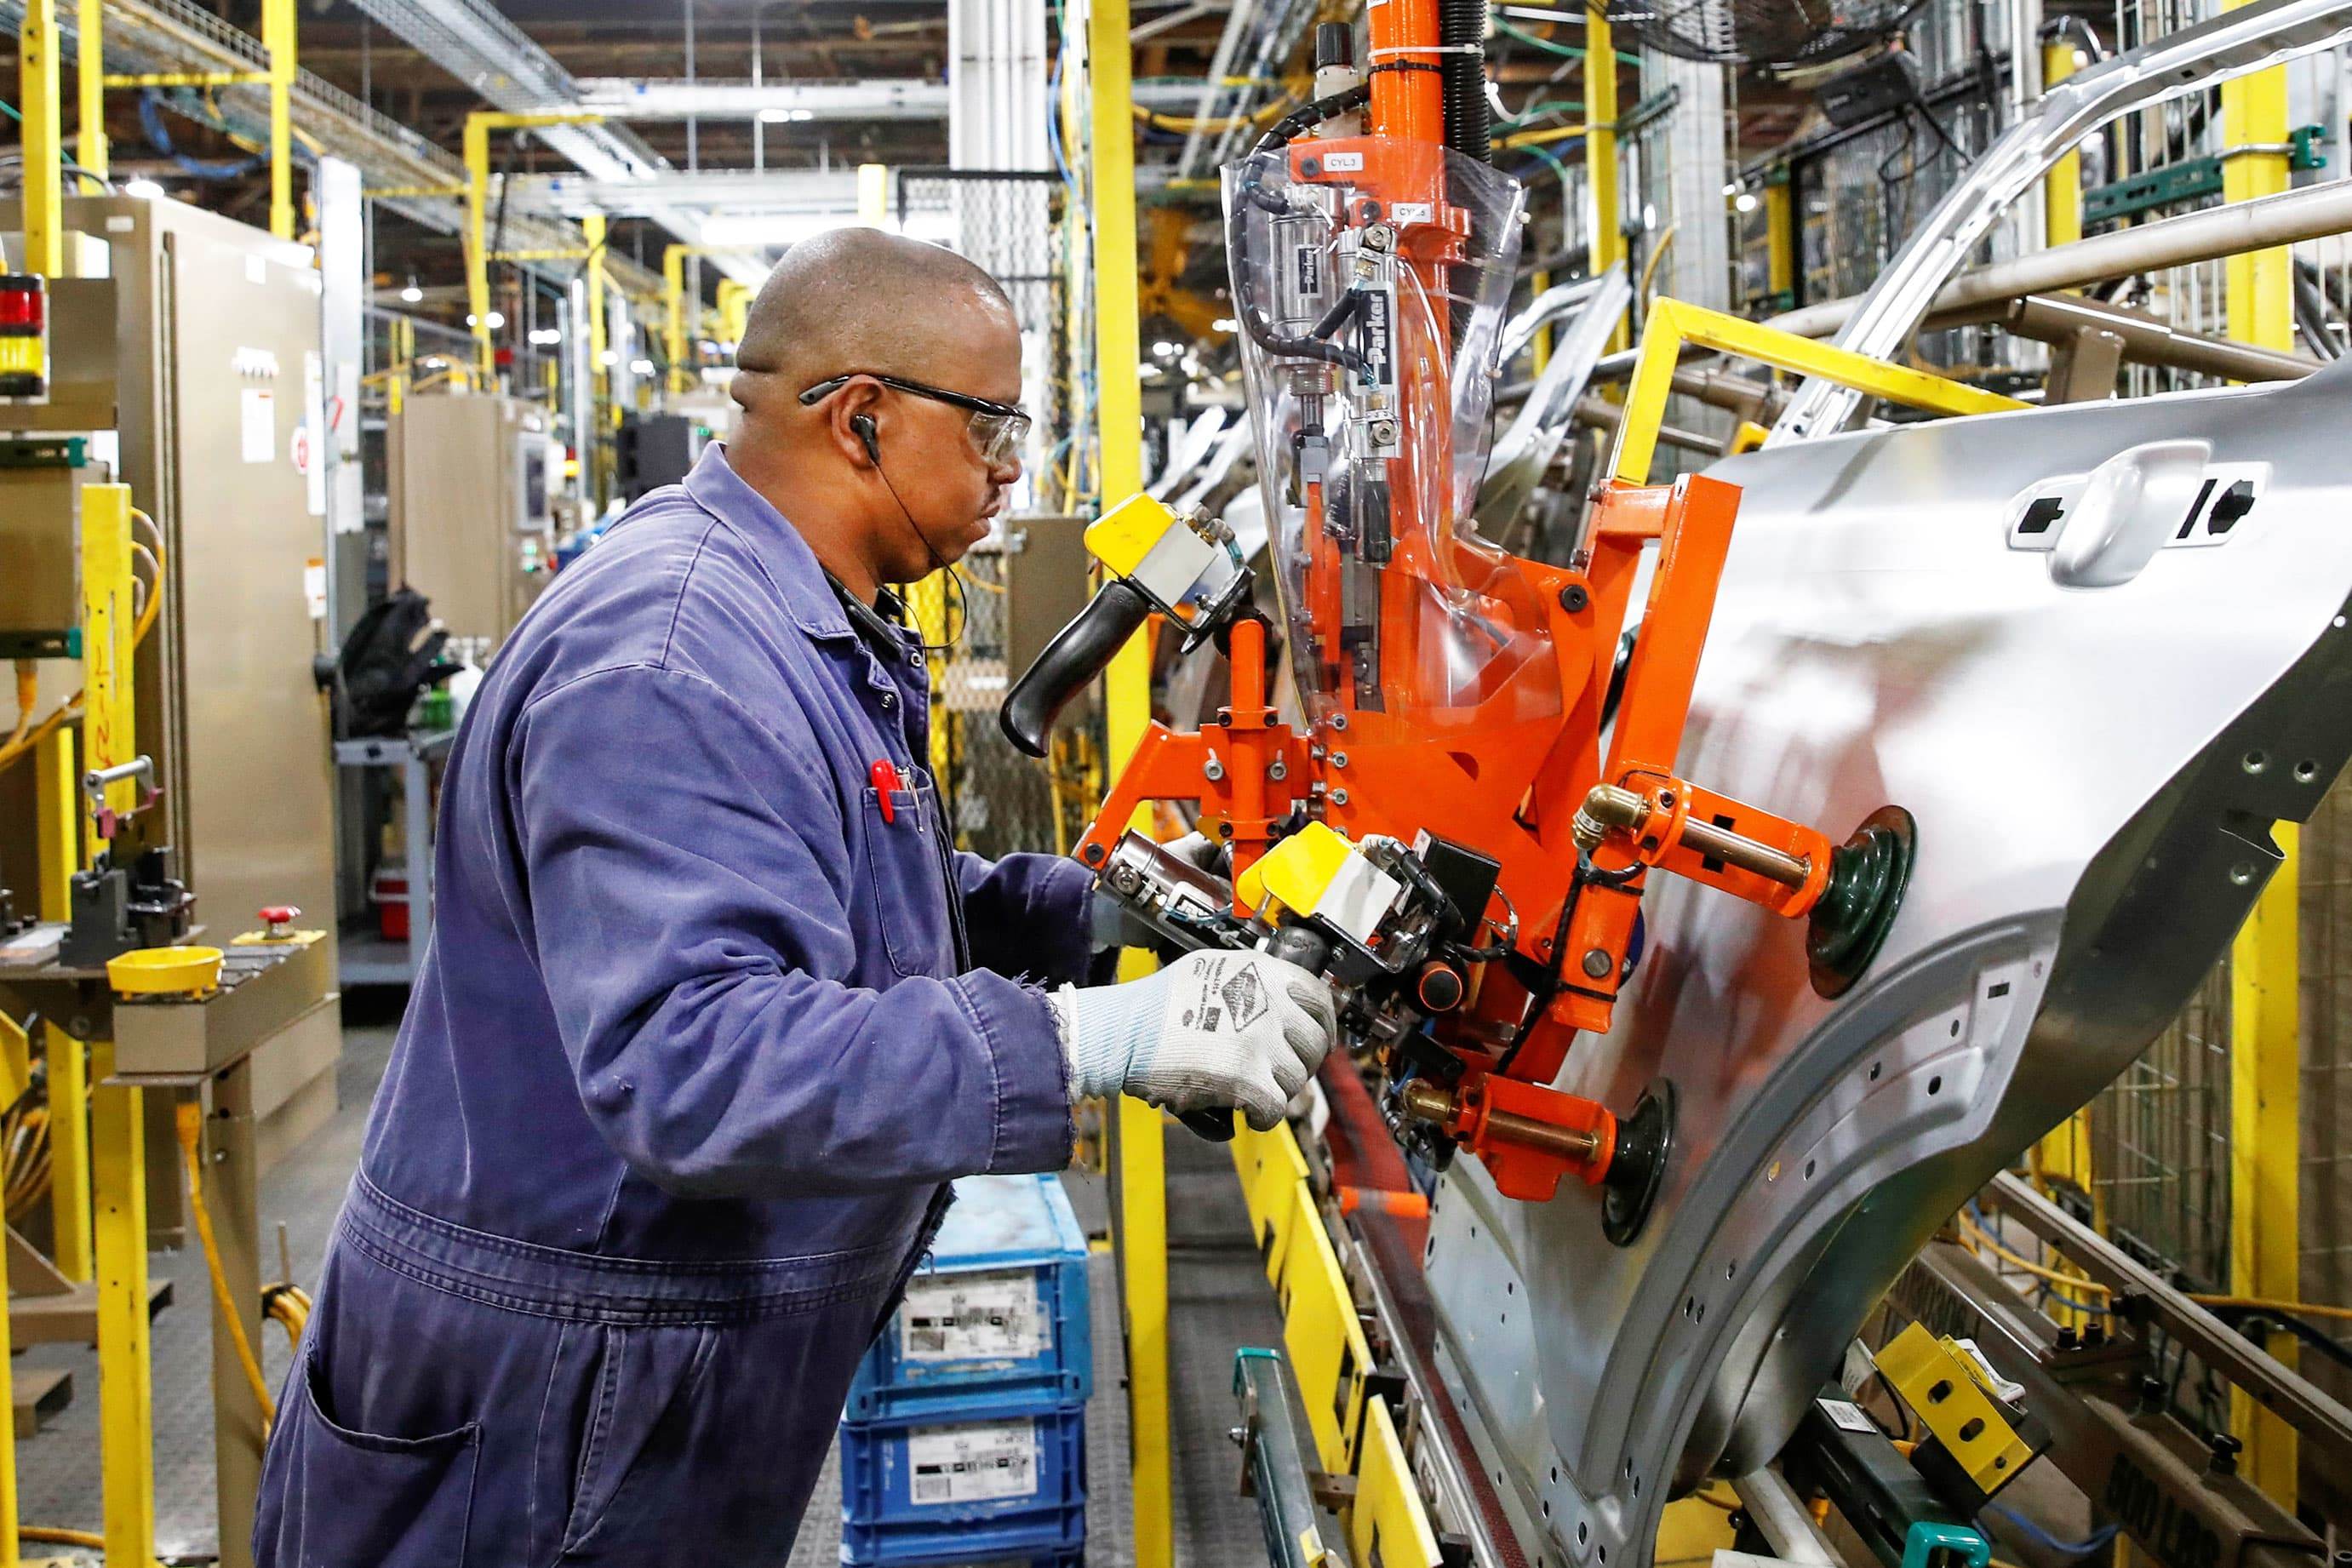 Jobs data, manufacturing report, Exxon earnings: 3 things to watch in the markets Friday